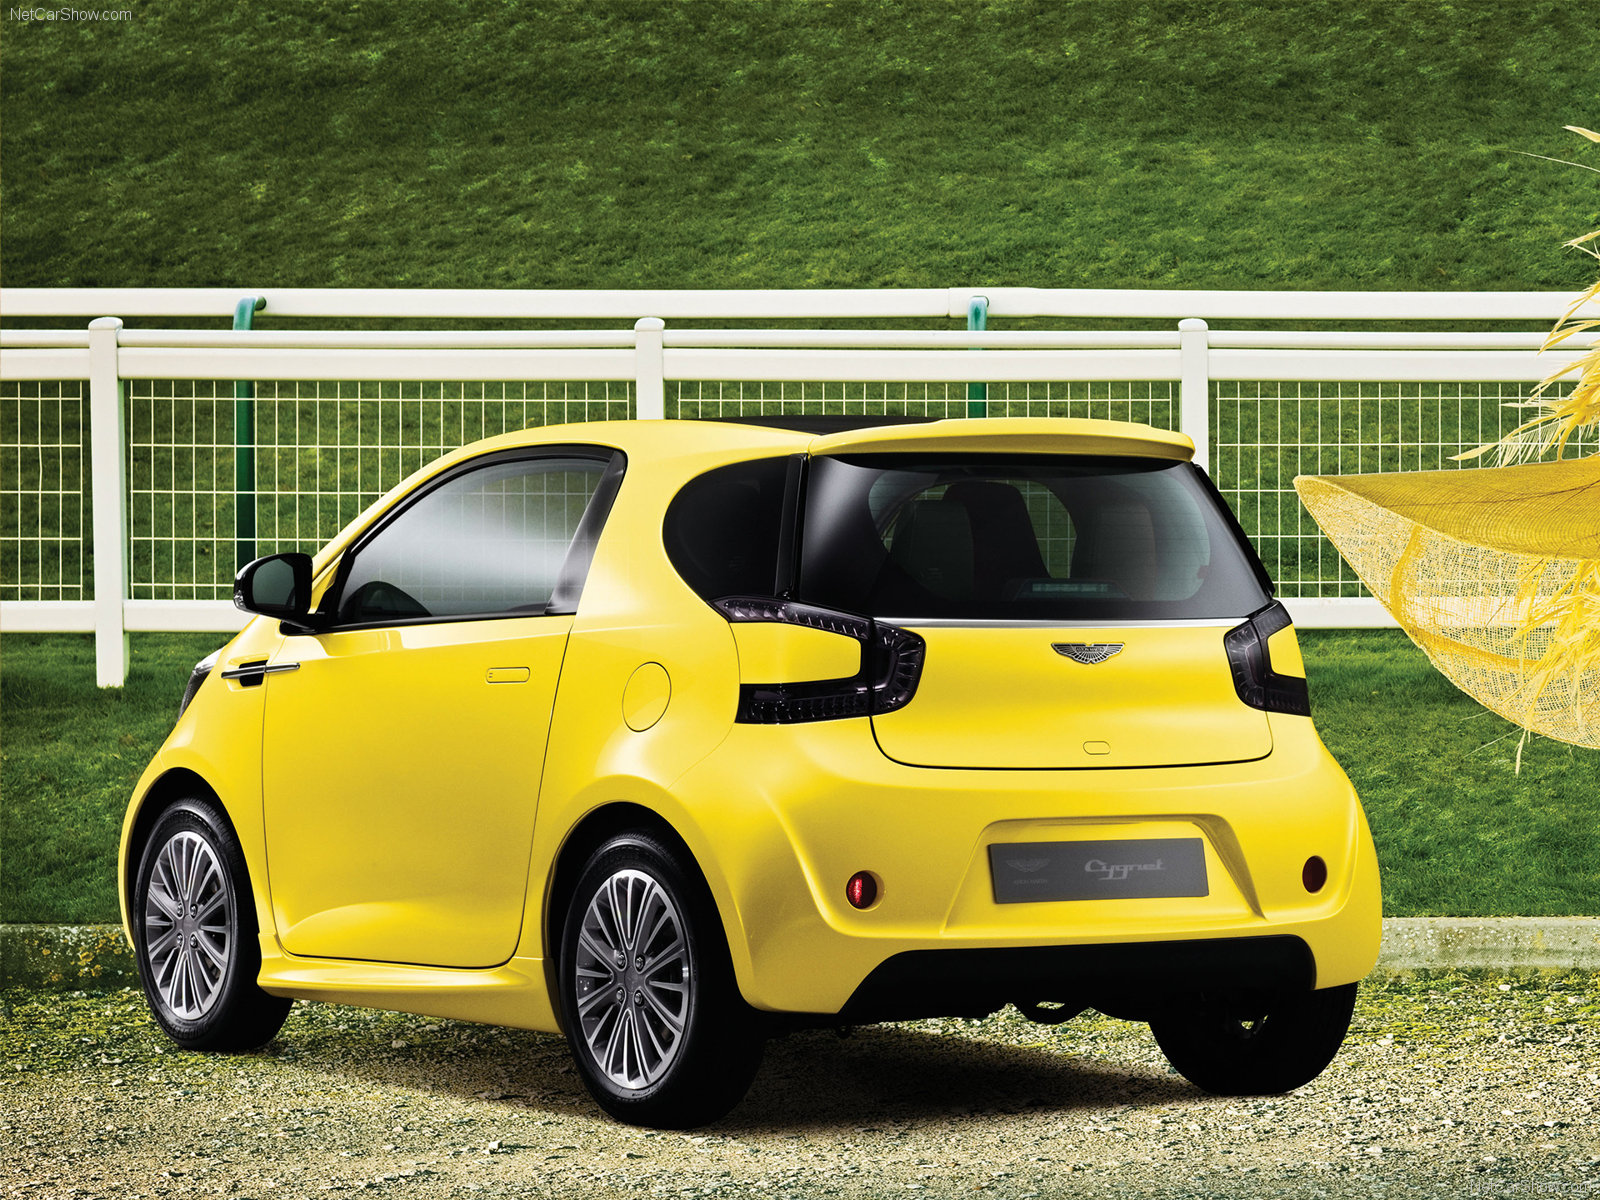 aston martin cygnet yellow